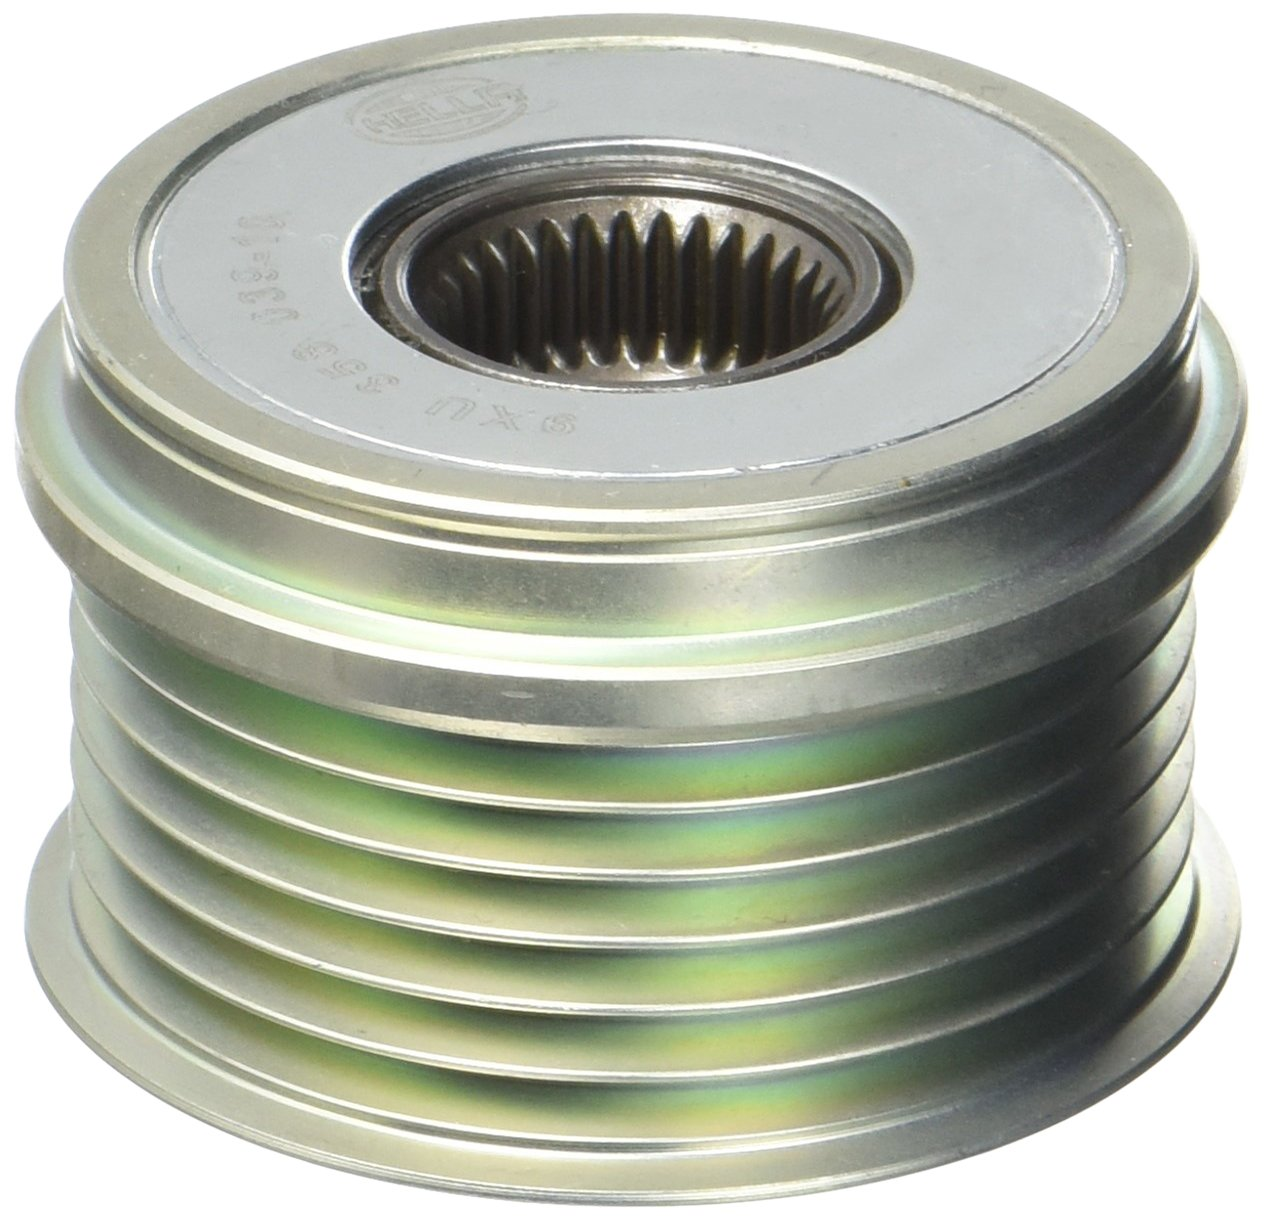 Thread Size: M16x1,5 Number of grooves: 6 HELLA 9XU 358 039-101 Alternator Freewheel Clutch Belt Pulley /Ø: 54mm